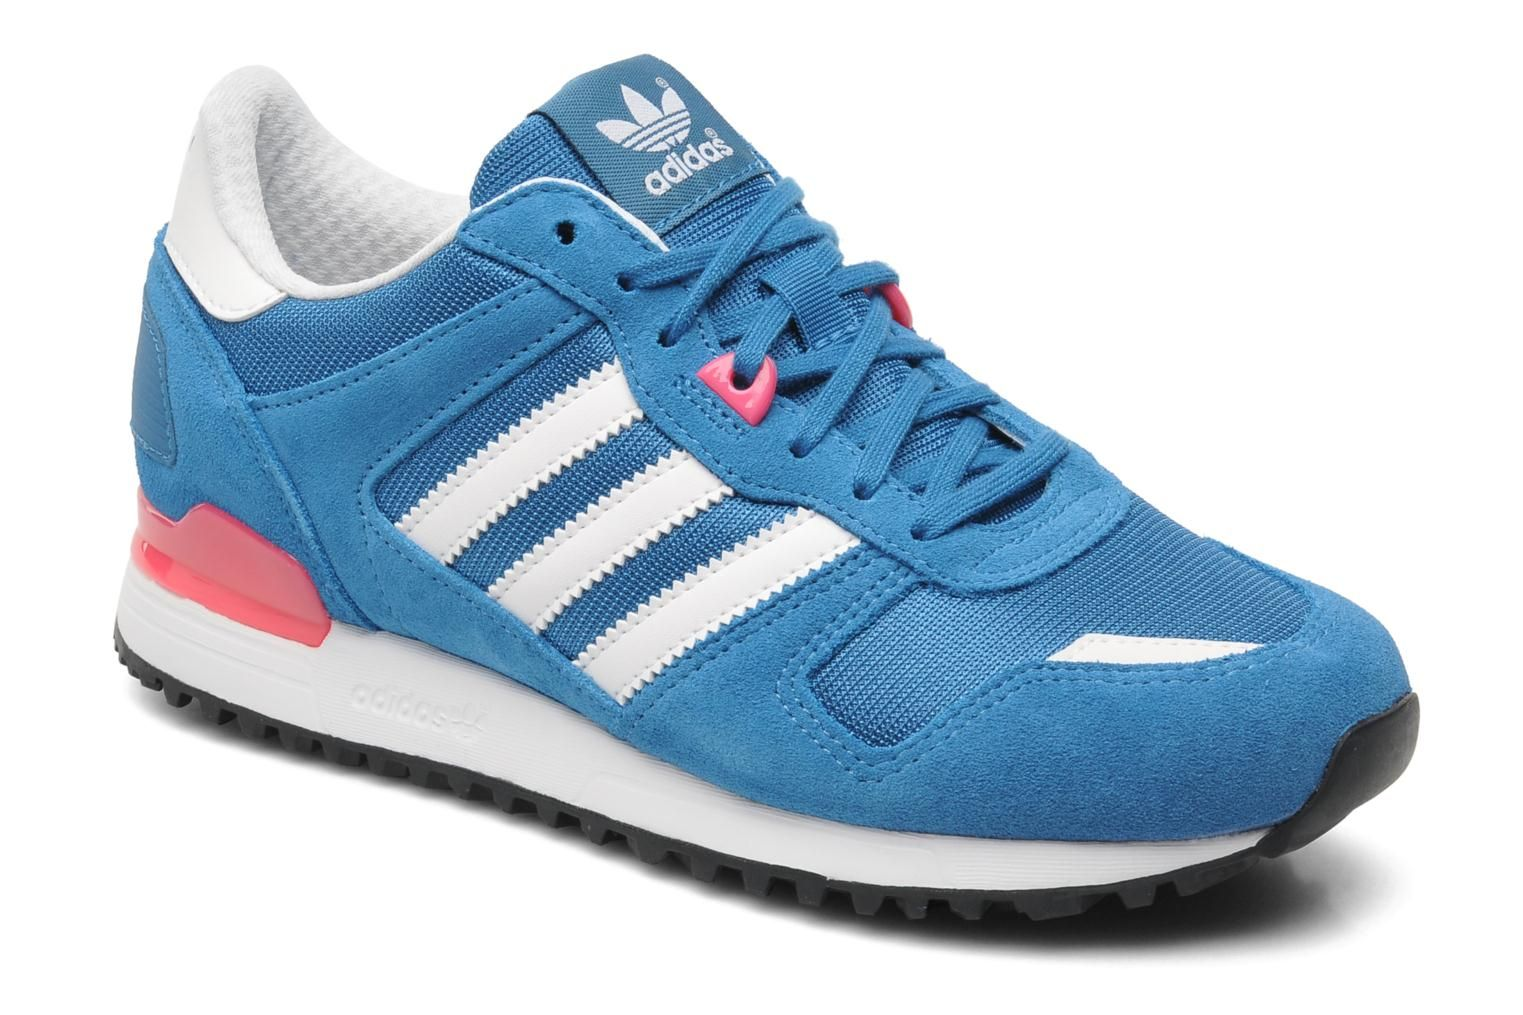 official photos c1afe 20cb1 Deportivas Adidas Originals Zx 700 W Azul - Sarenza.es (192994)